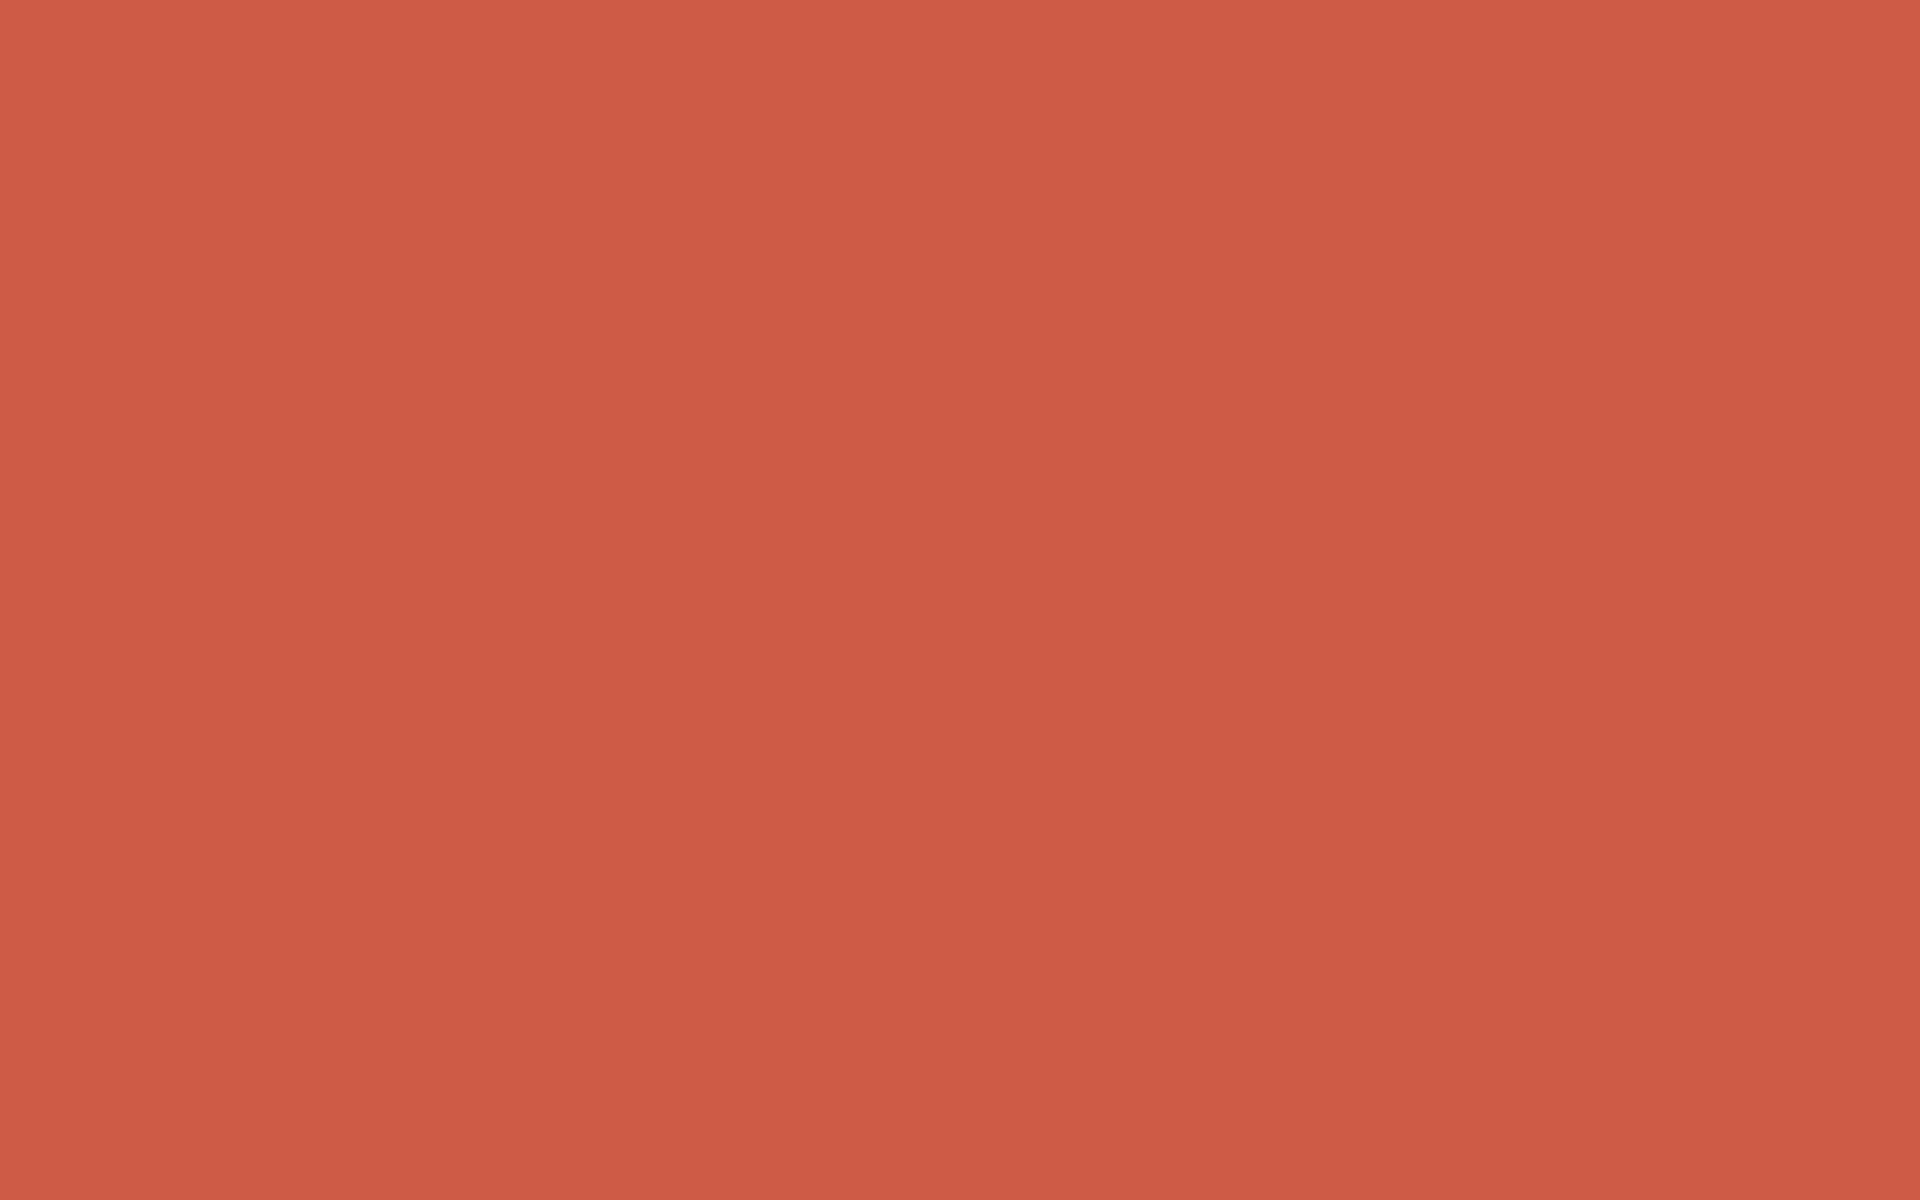 1920x1200 Dark Coral Solid Color Background